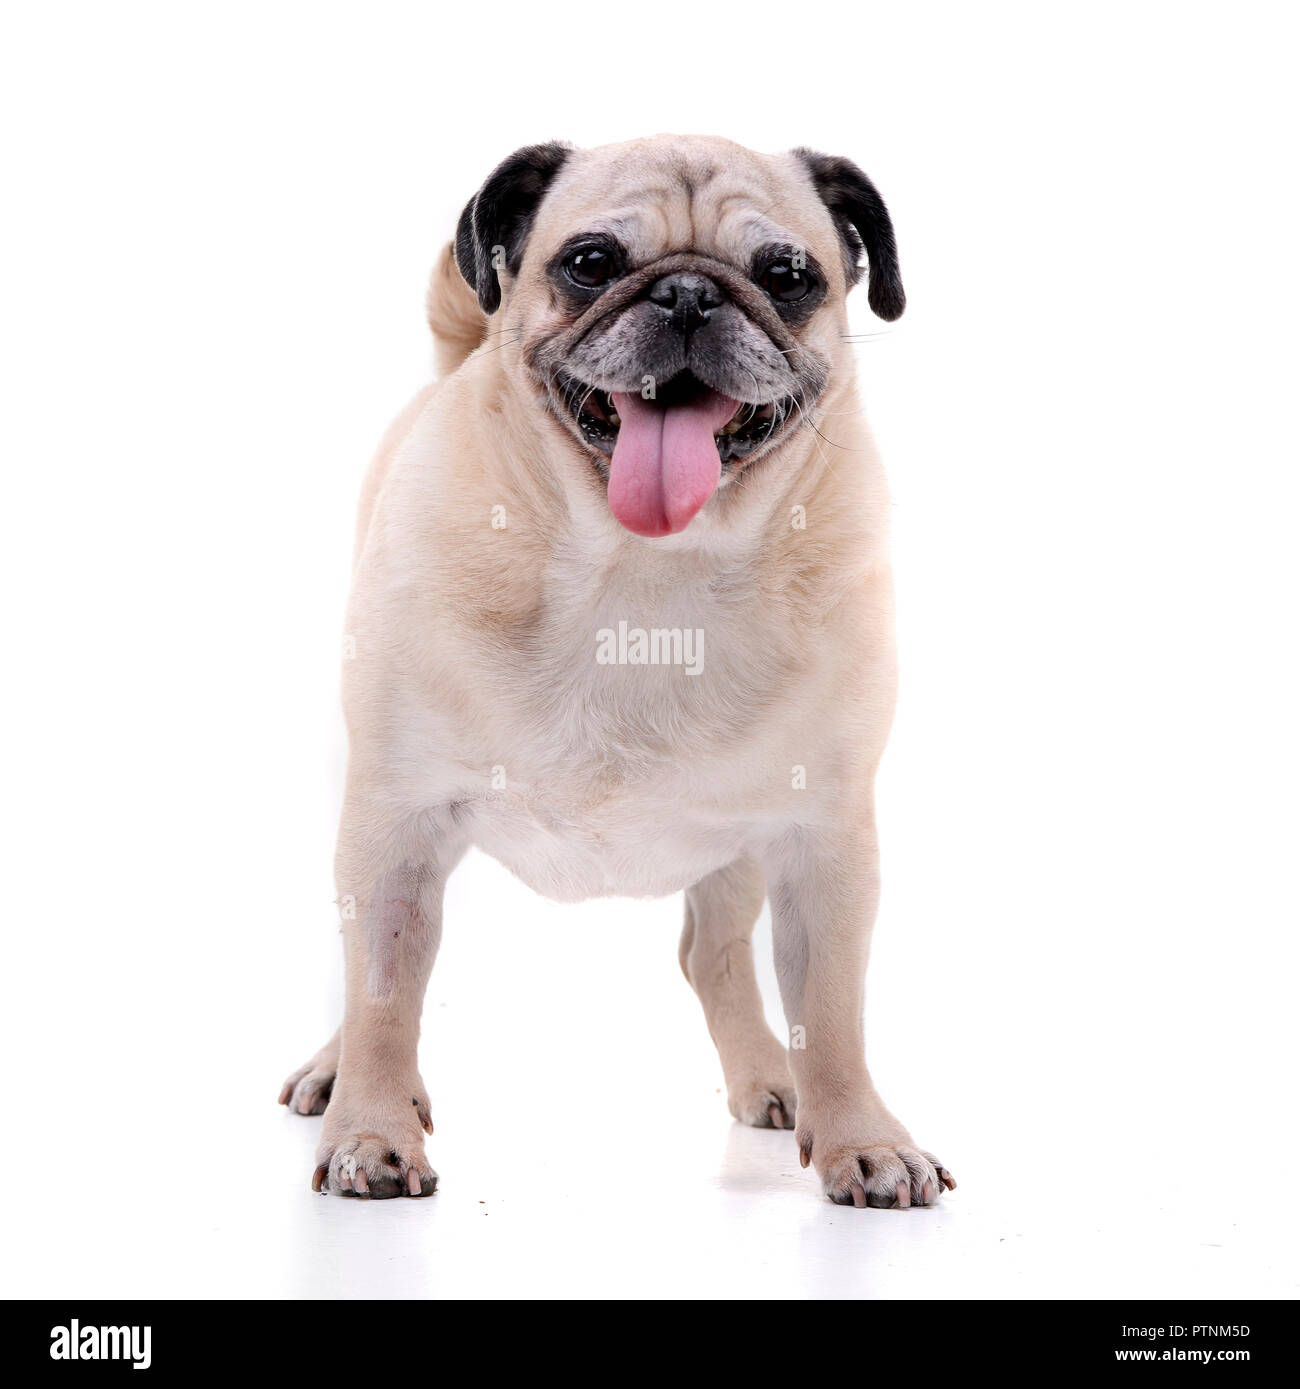 Studio shot of an adorable Mops (or Pug) standing on white background. - Stock Image